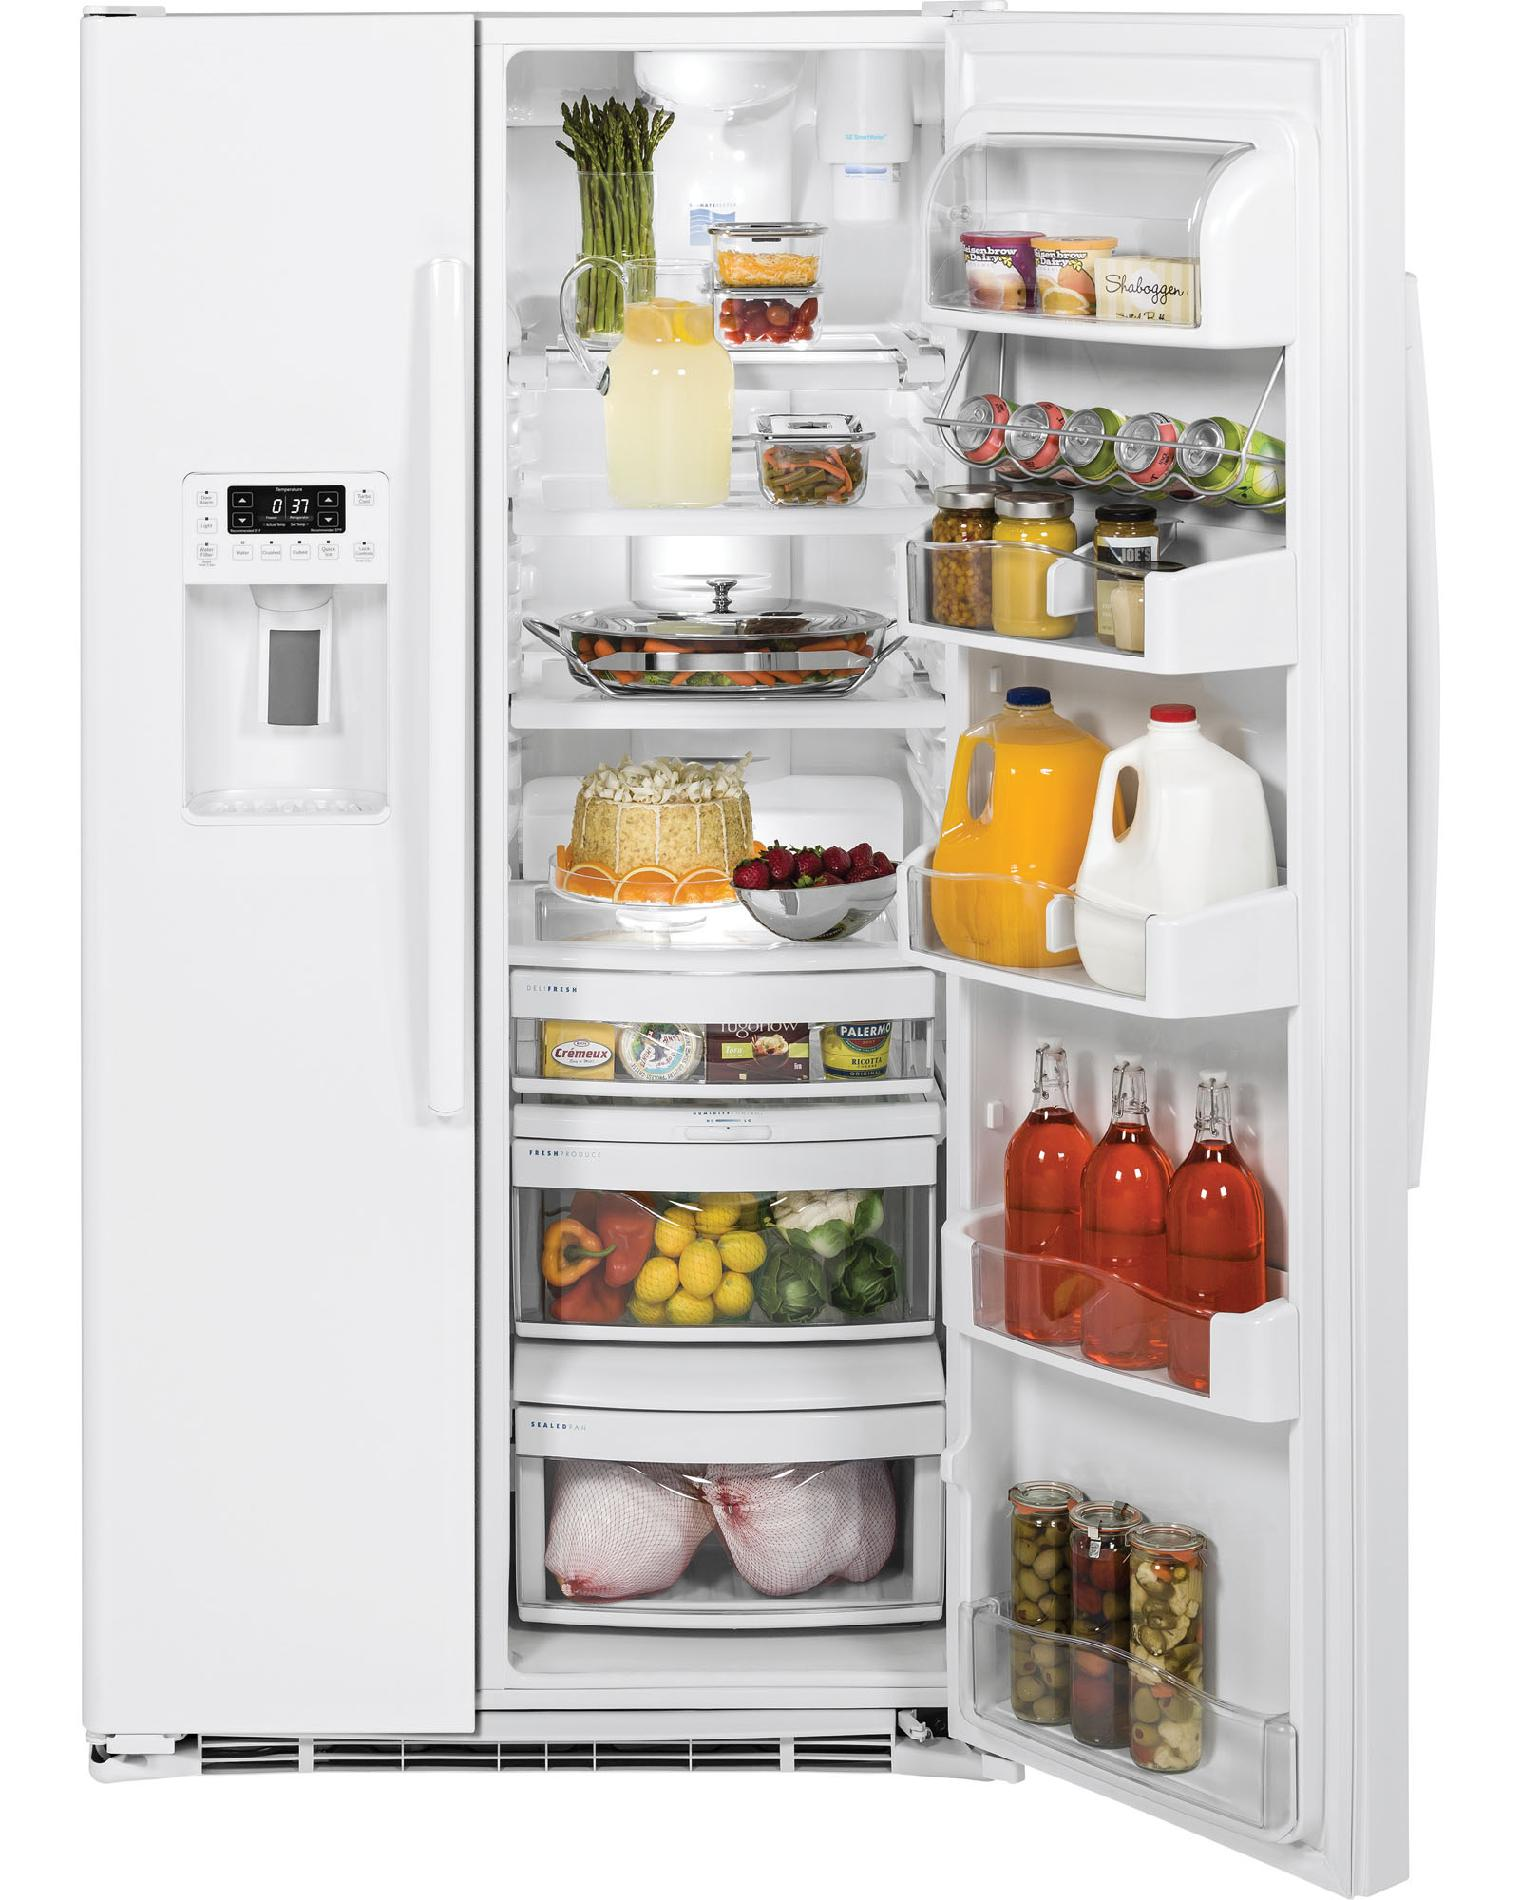 GE Profile 23.3 cu. ft. Counter-Depth Side-by-Side Refrigerator - White